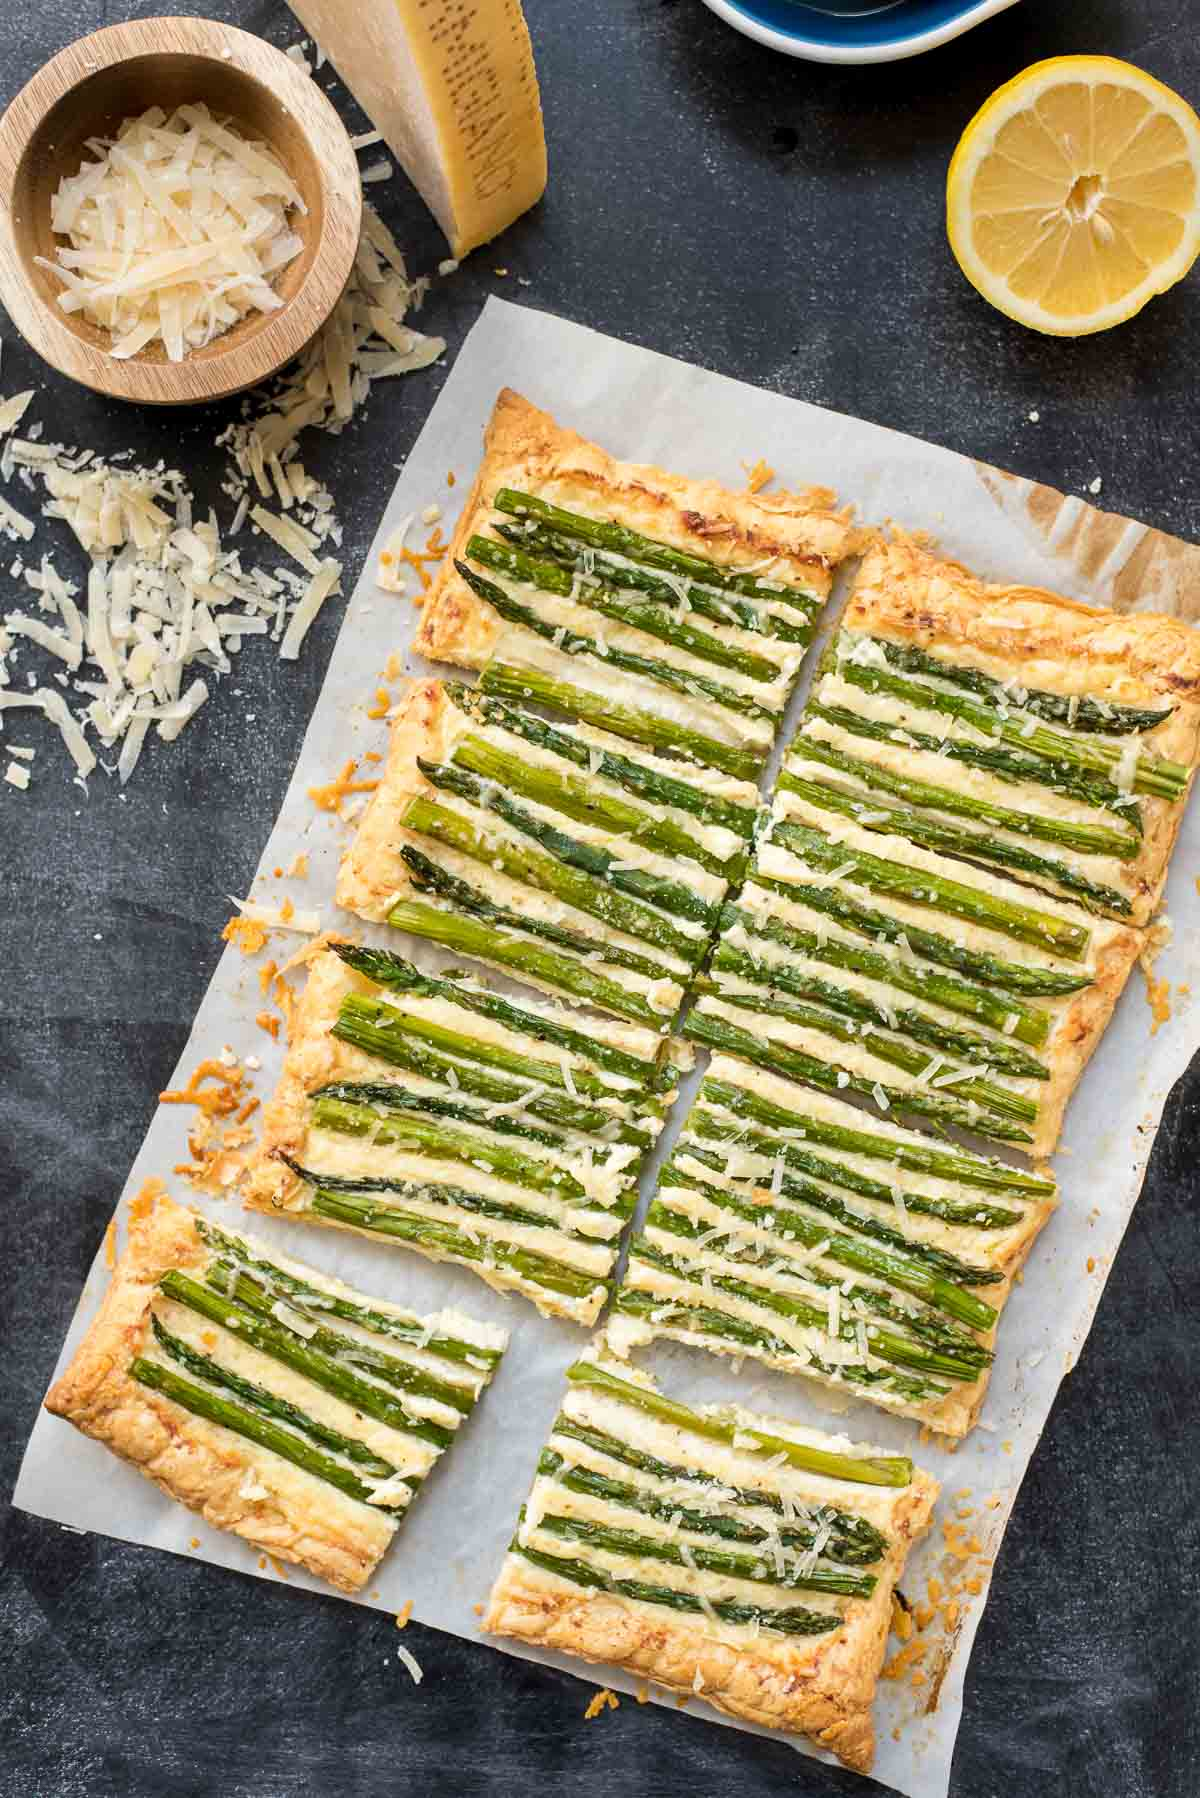 This Parmesan Asparagus Tart is a bright, easy appetizer for spring!